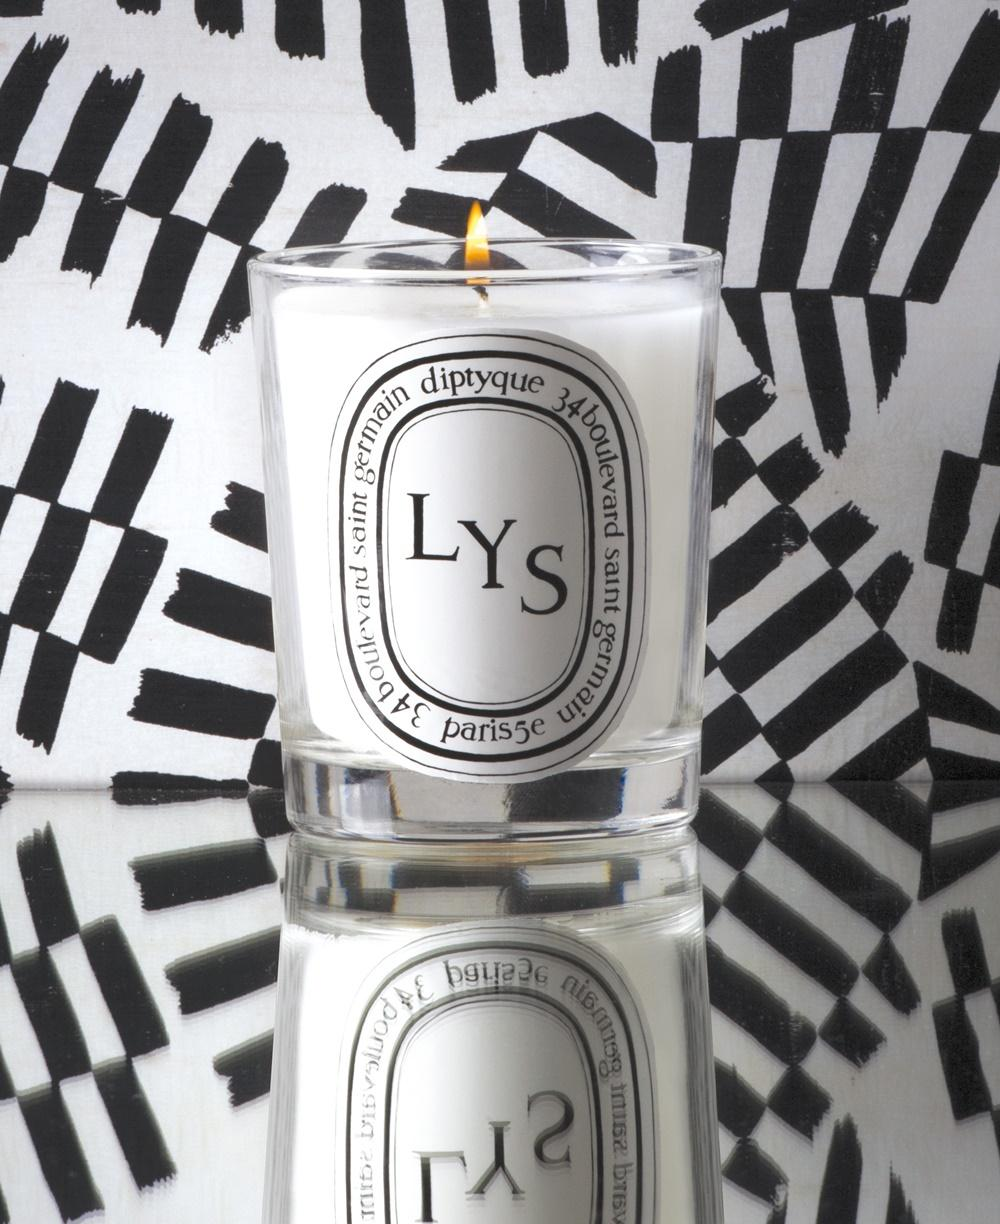 e348837dbc9c Lys Candle 190gr 01